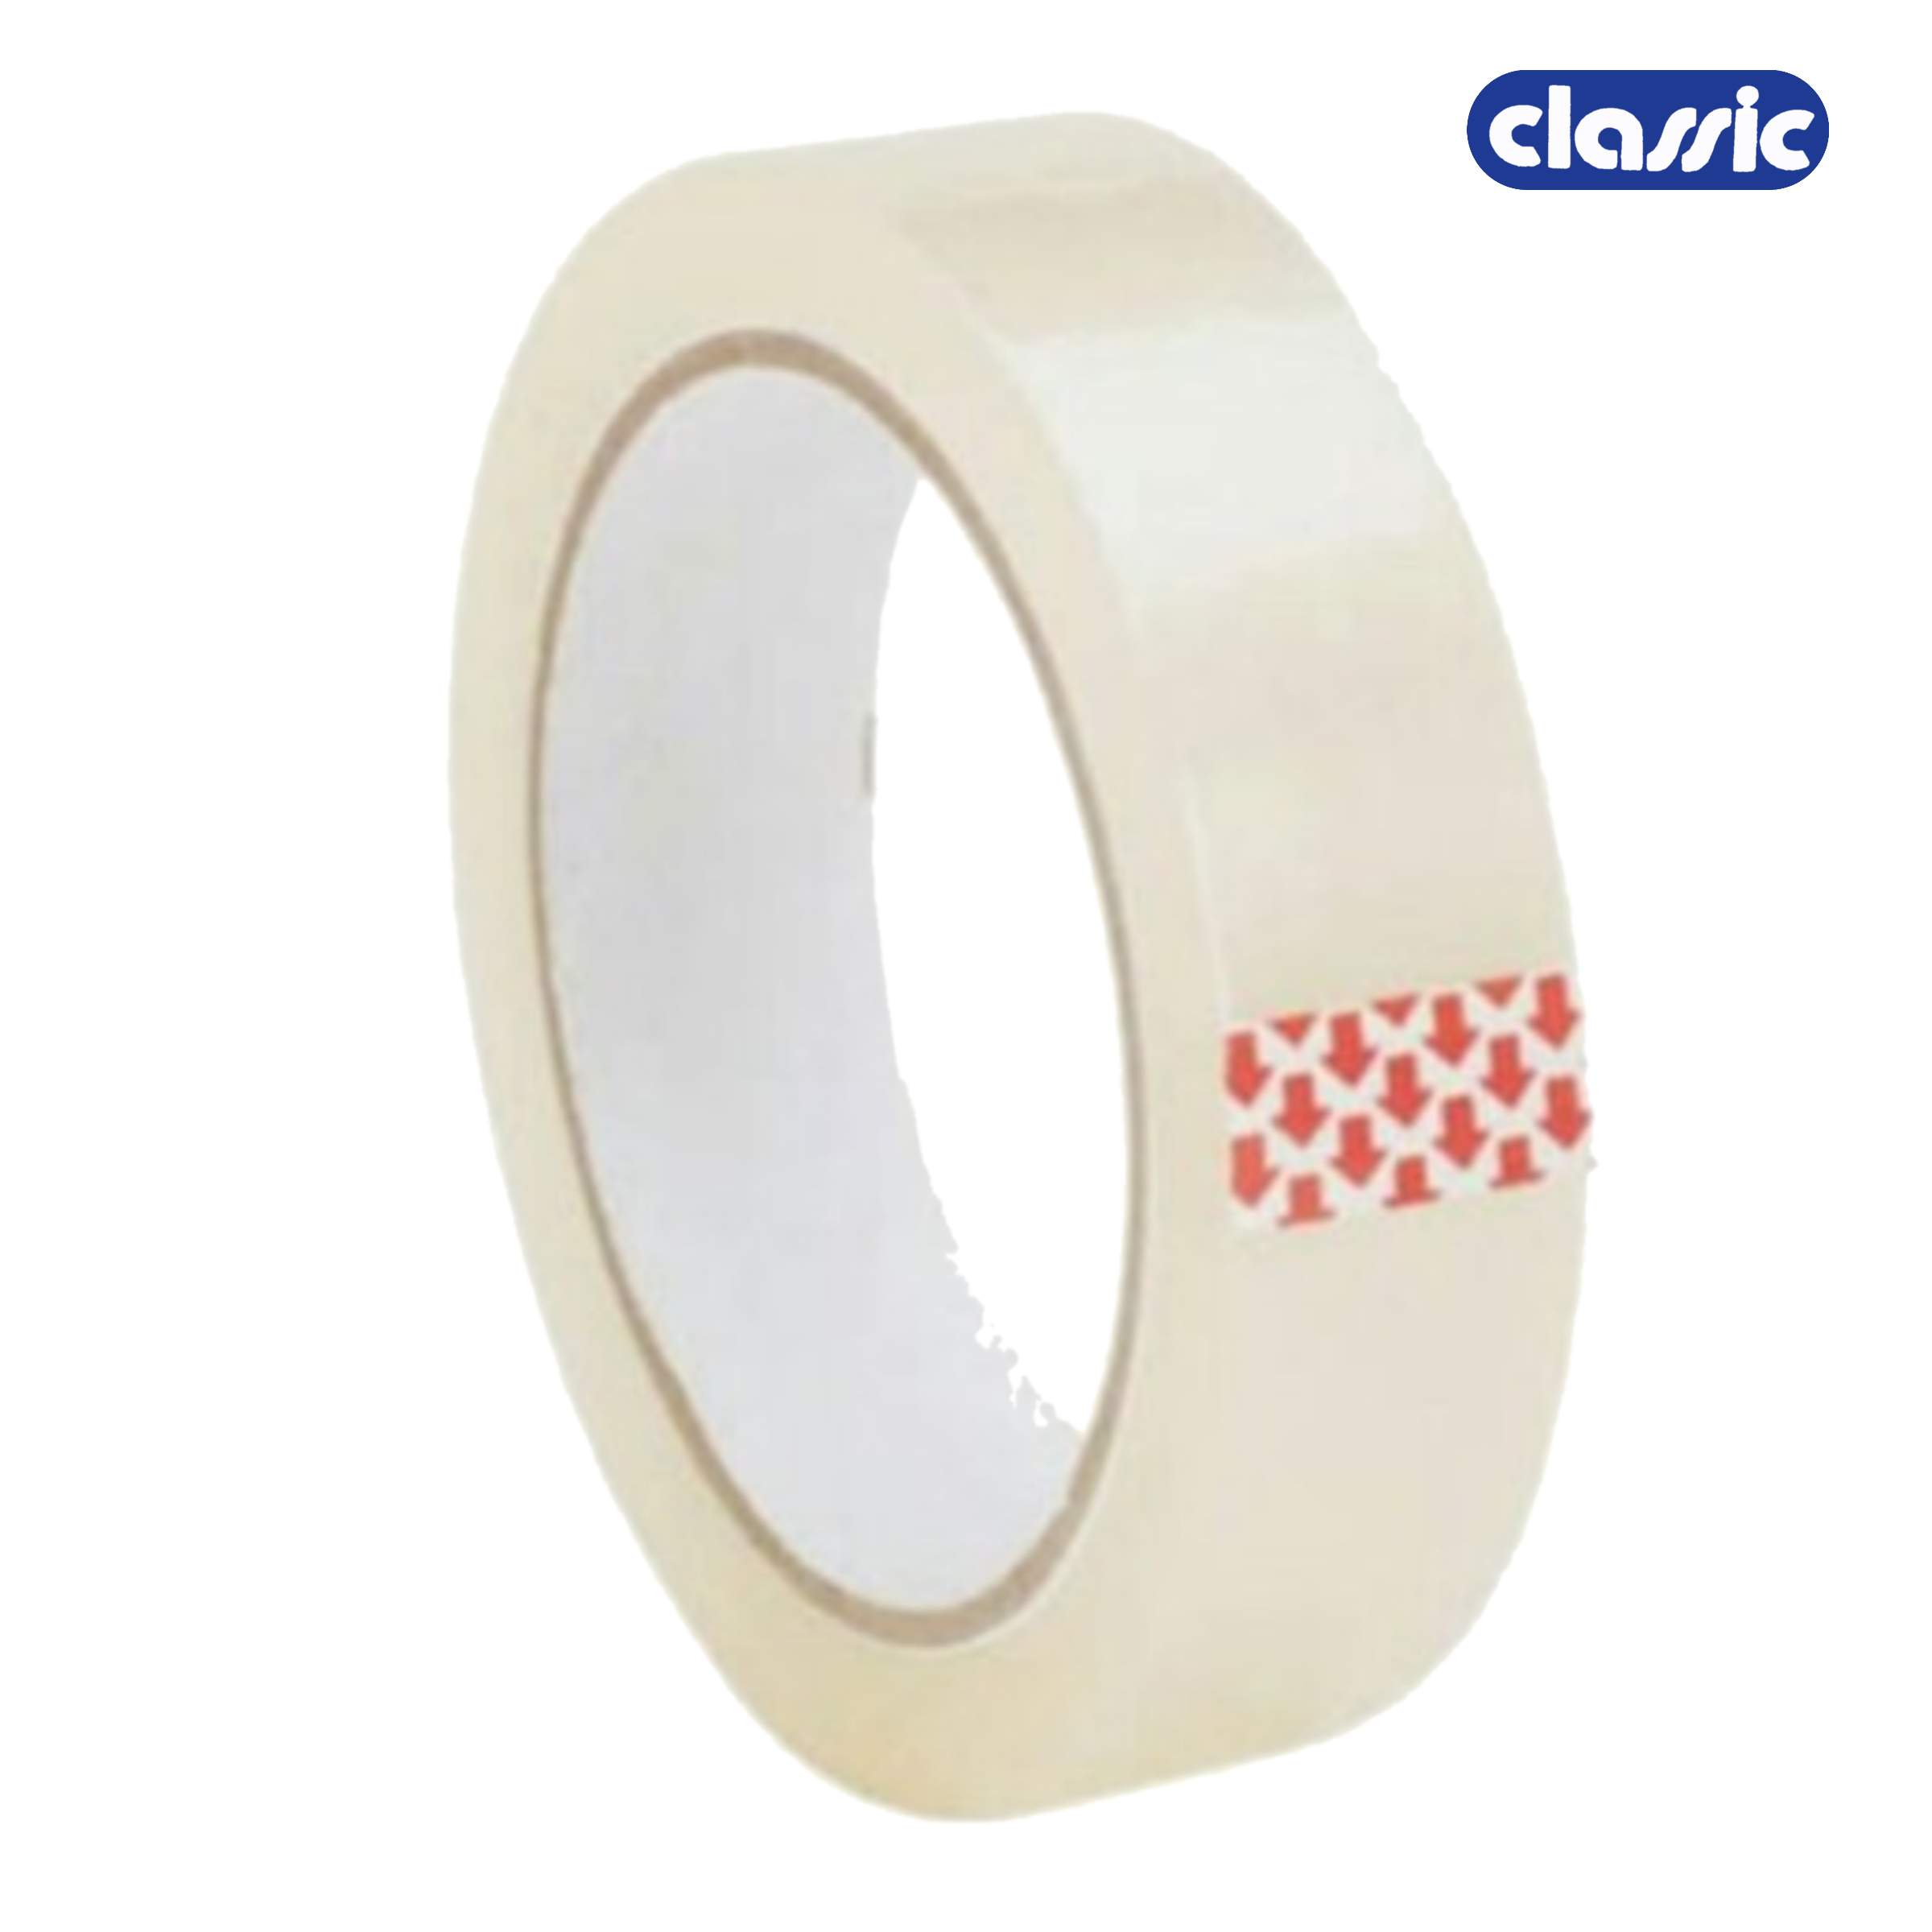 Classic 30 Micron 24 mm/1 Inch Transparent Self Adhesive Tape, Premium Quality, Pack of 1 Roll